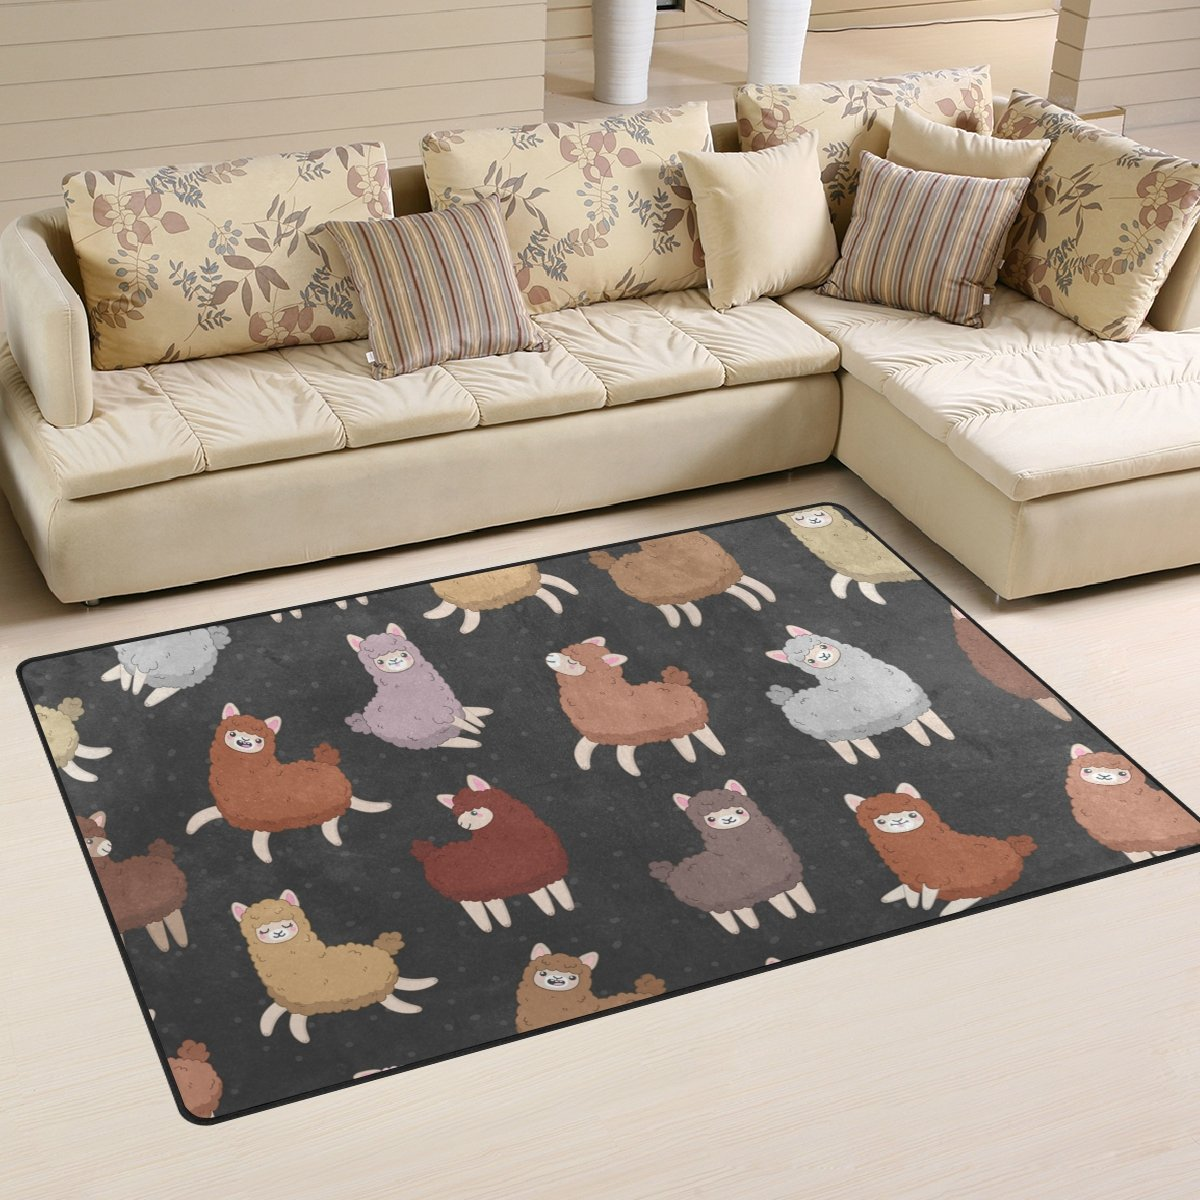 WellLee Area Rug,Cute Animal Fluffy Llama Alpaca Floor Rug Non-Slip Doormat for Living Dining Dorm Room Bedroom Decor 60x39 inch